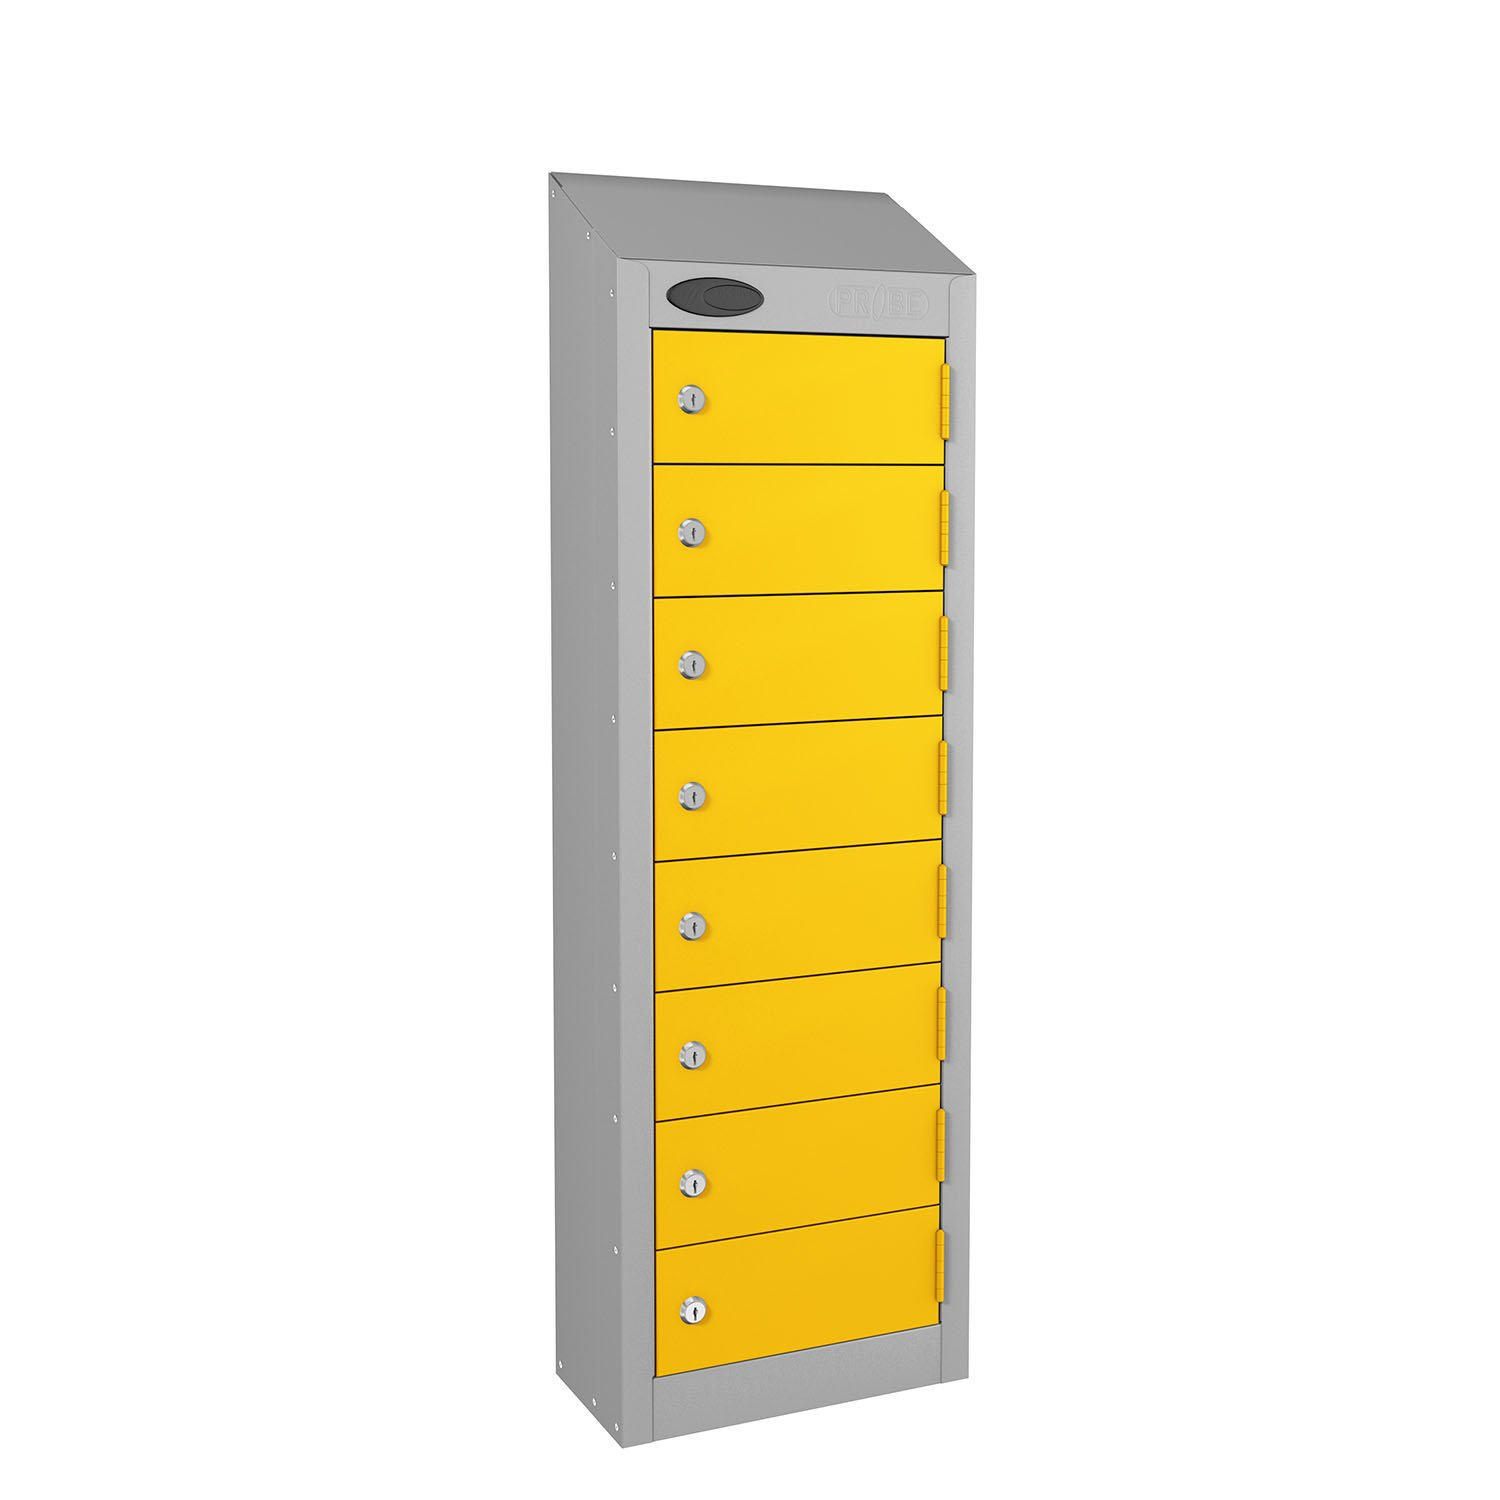 Probe 8 doors small compartment personal locker in yellow colour